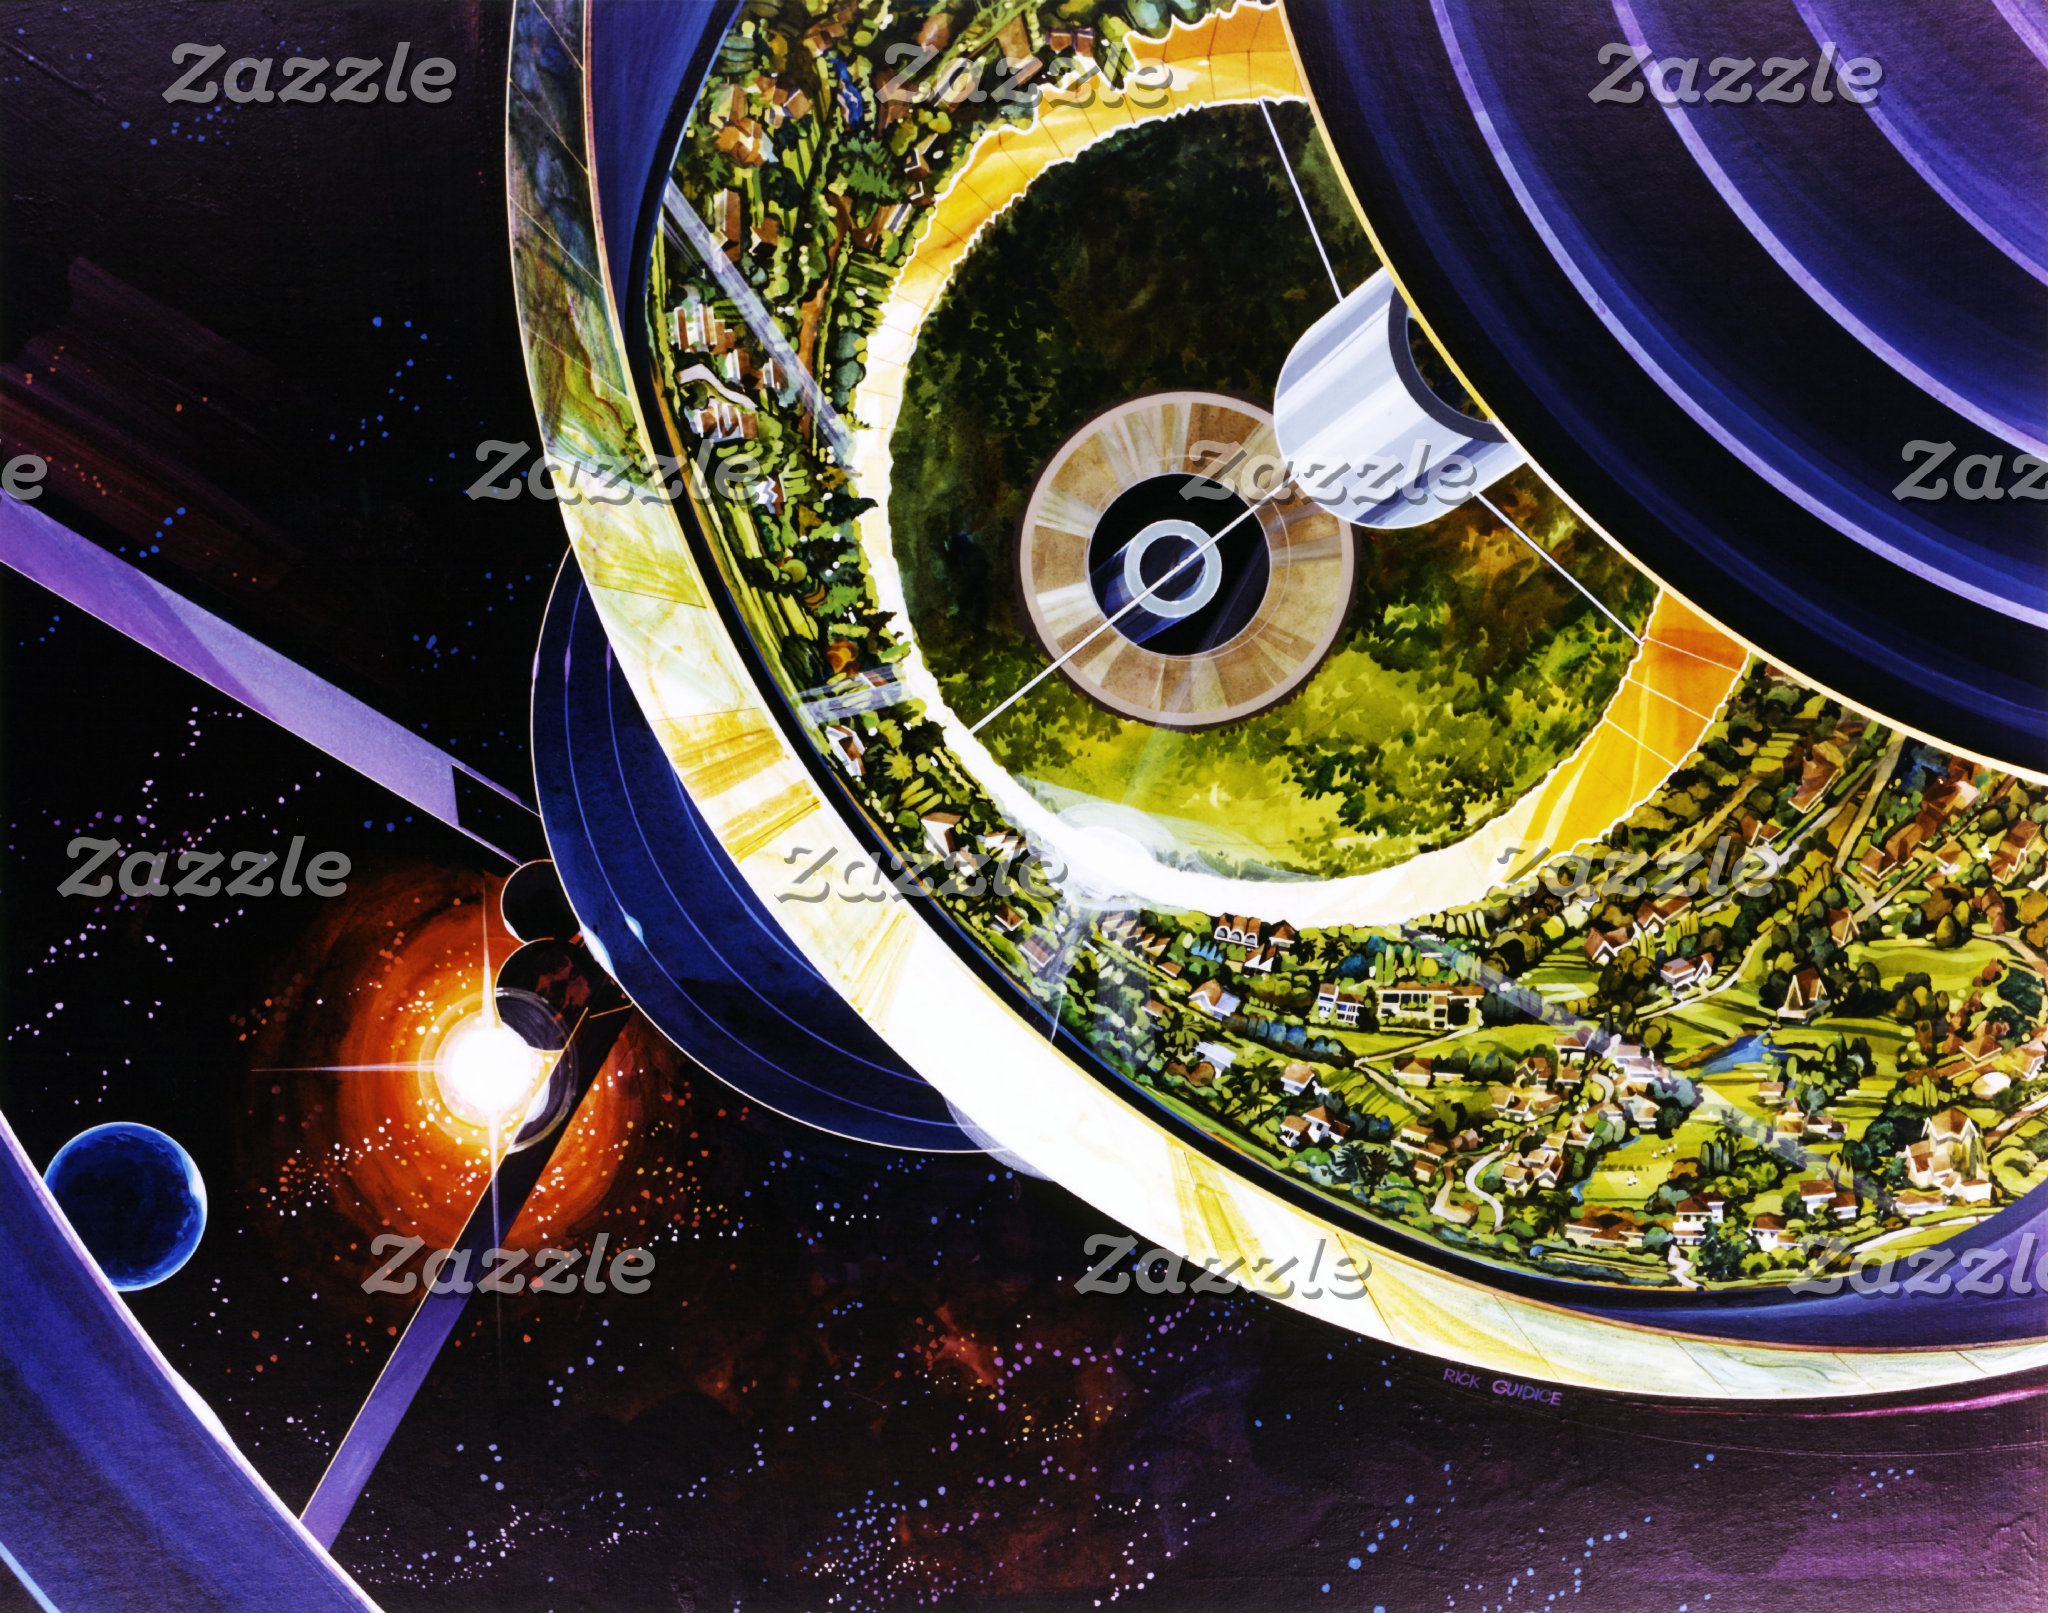 Spacecraft and Space Station Art